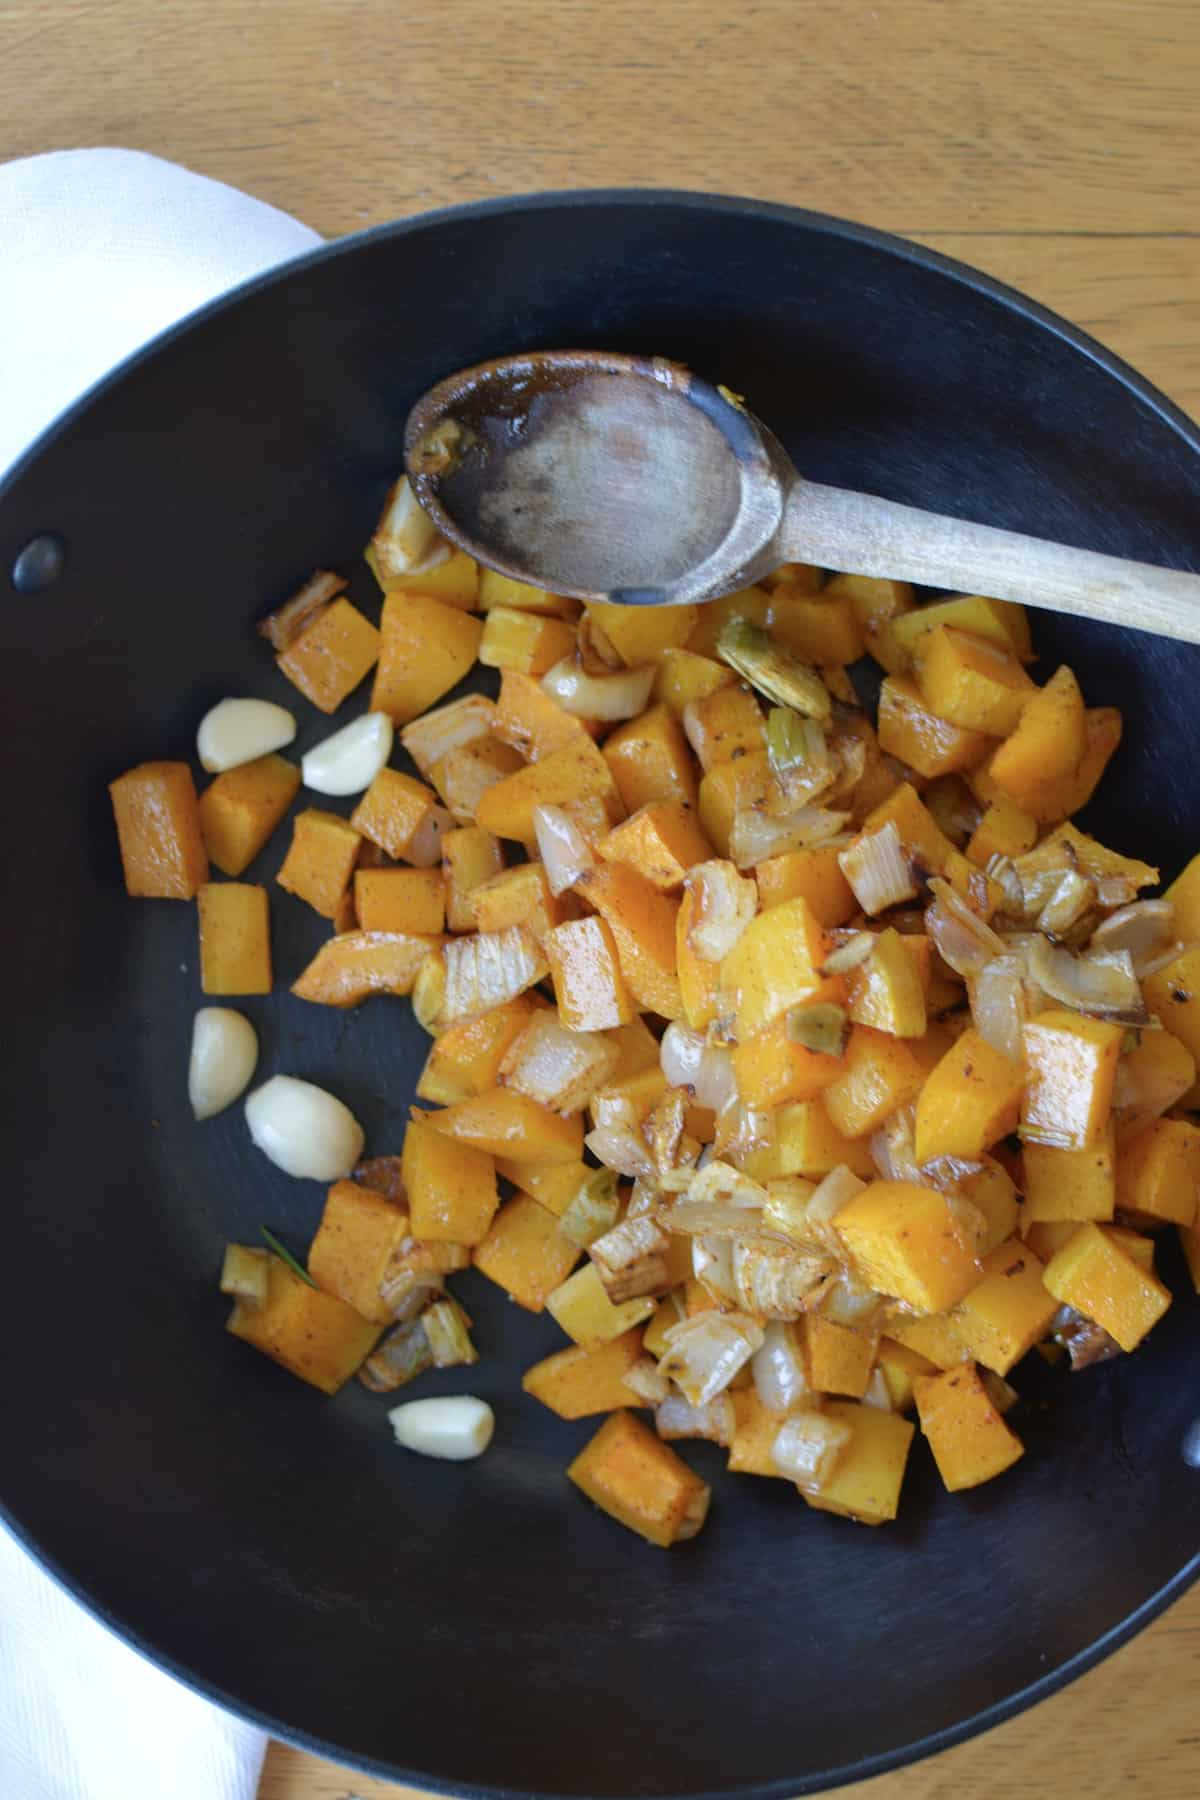 An overhead image of hunks of roasted squash, onions, and cloves of garlic in a black pot with a wooden spoon sitting on top.